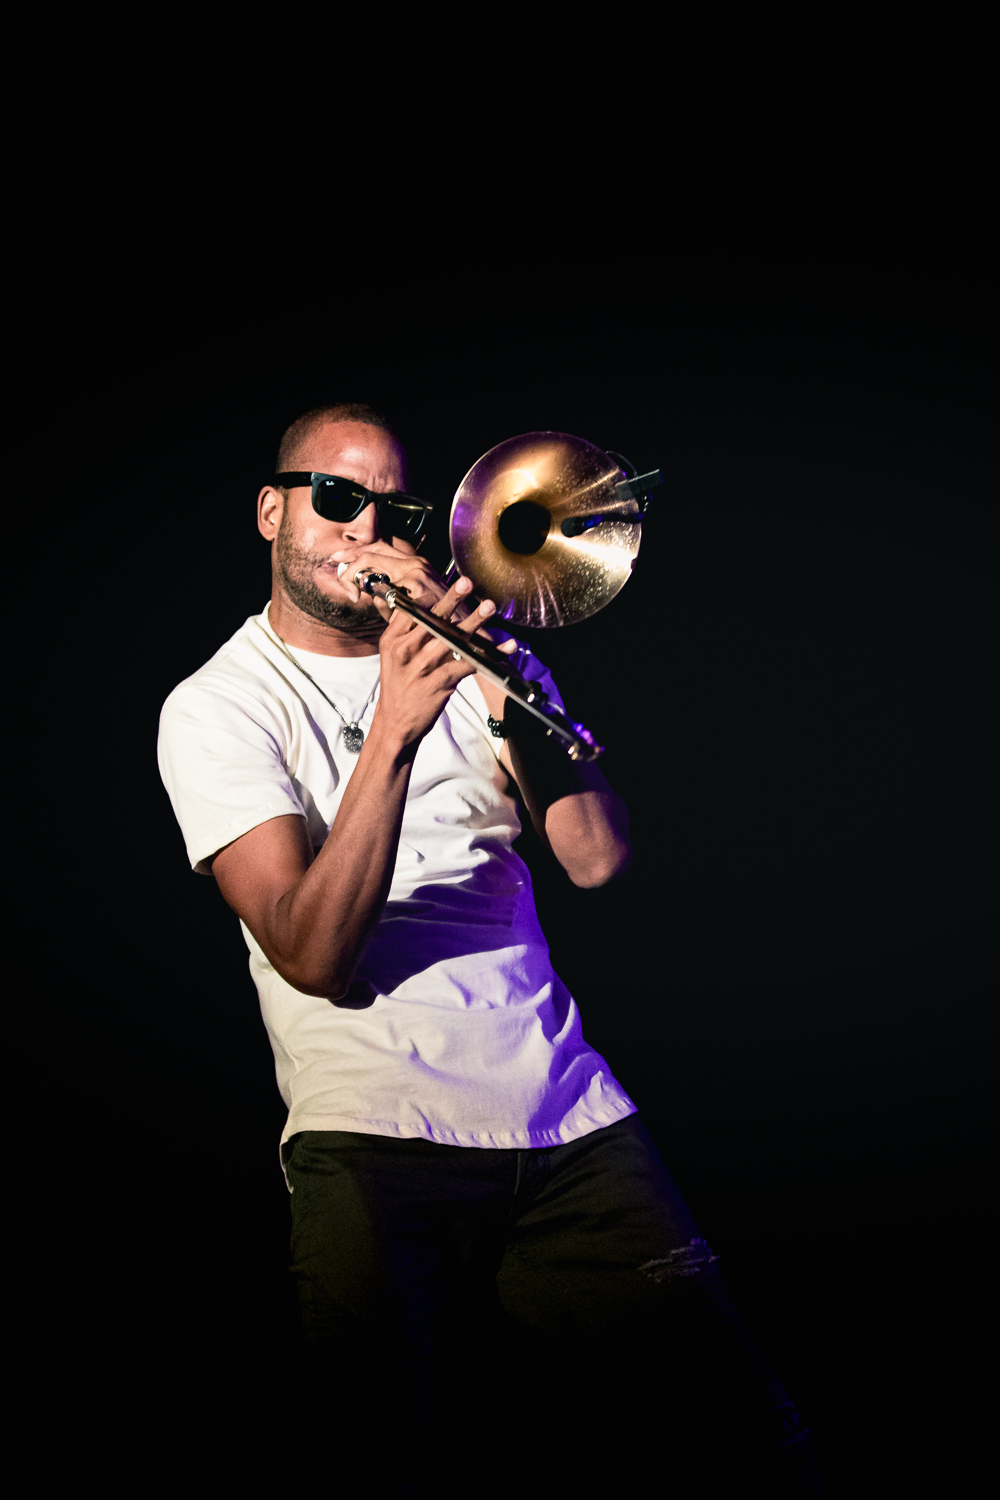 Trombone Shorty stepping out of the main stage lights and closer to the audience in the shadows. Photo: Lmsorenson.net